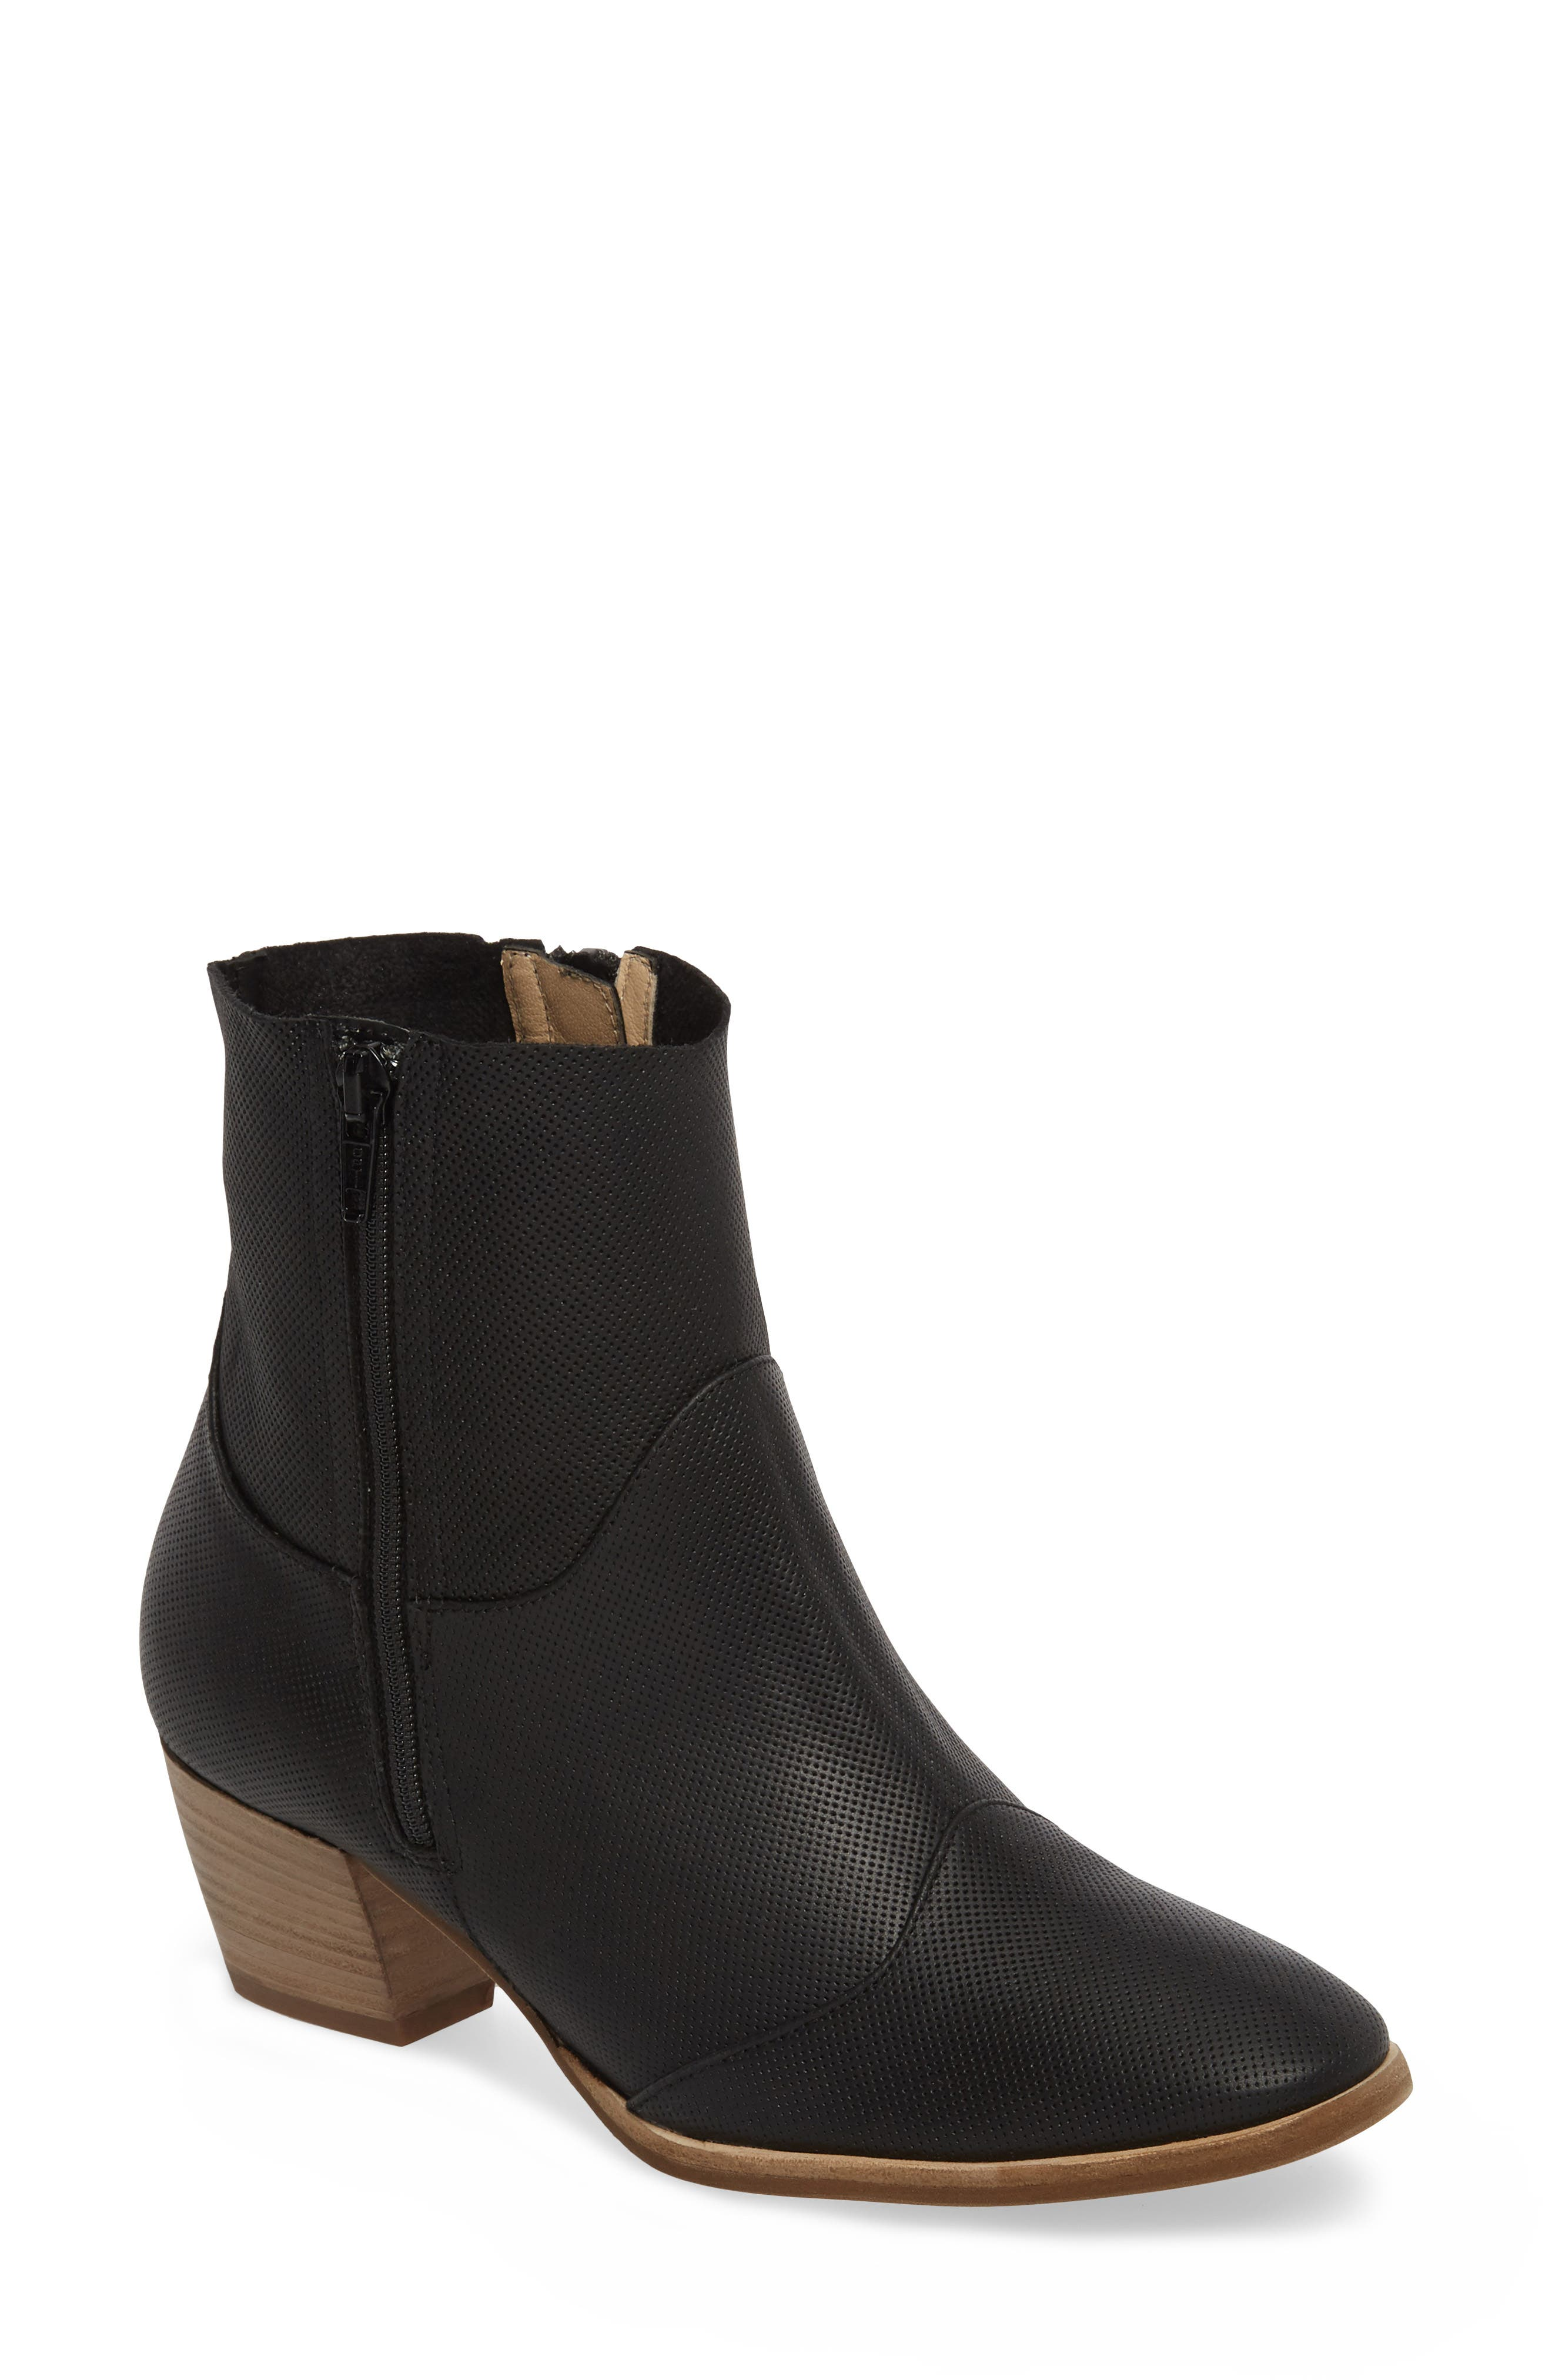 AMALFI BY RANGONI Robin Bootie in Black Leather